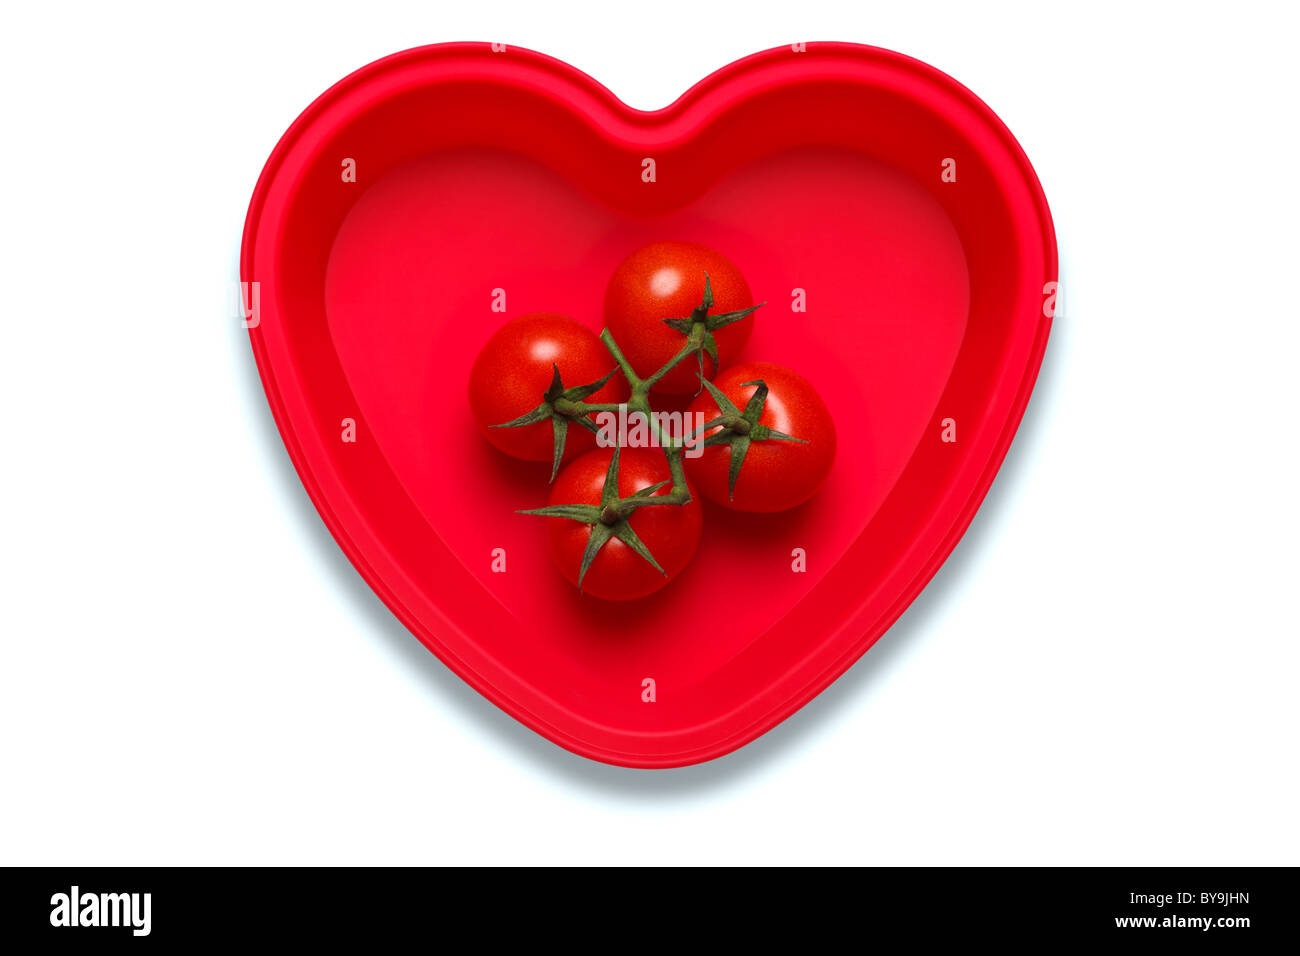 Conceptual photo of tomatoes in a heart shaped dish to represent a love of the vegetable, isolated on a white background - Stock Image